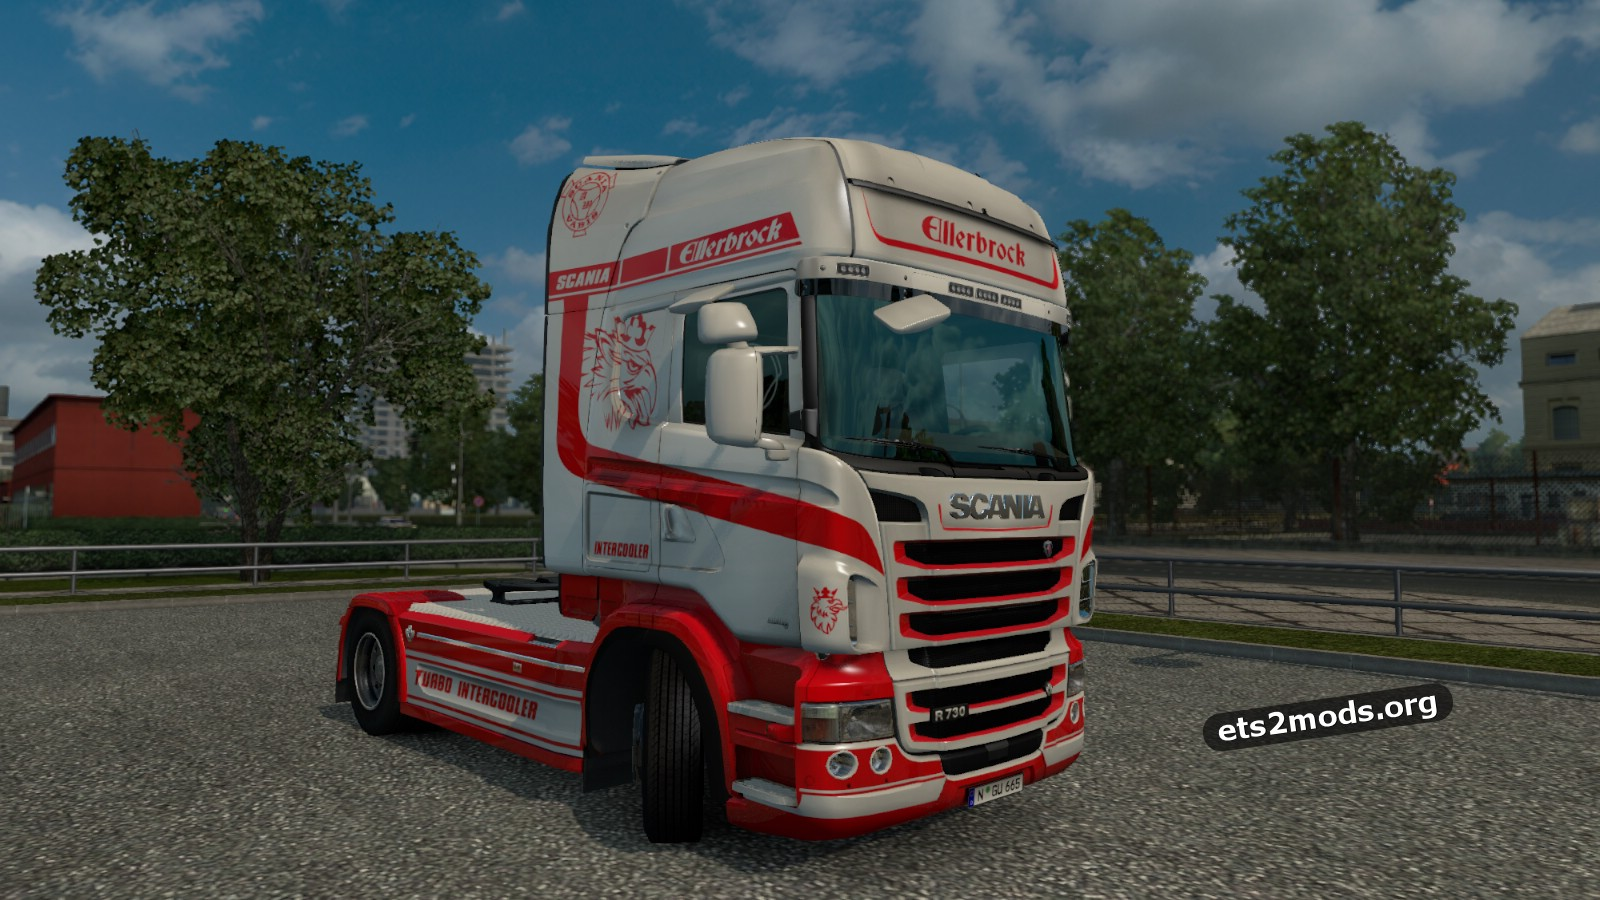 Ellerbrock skin for Scania RJL